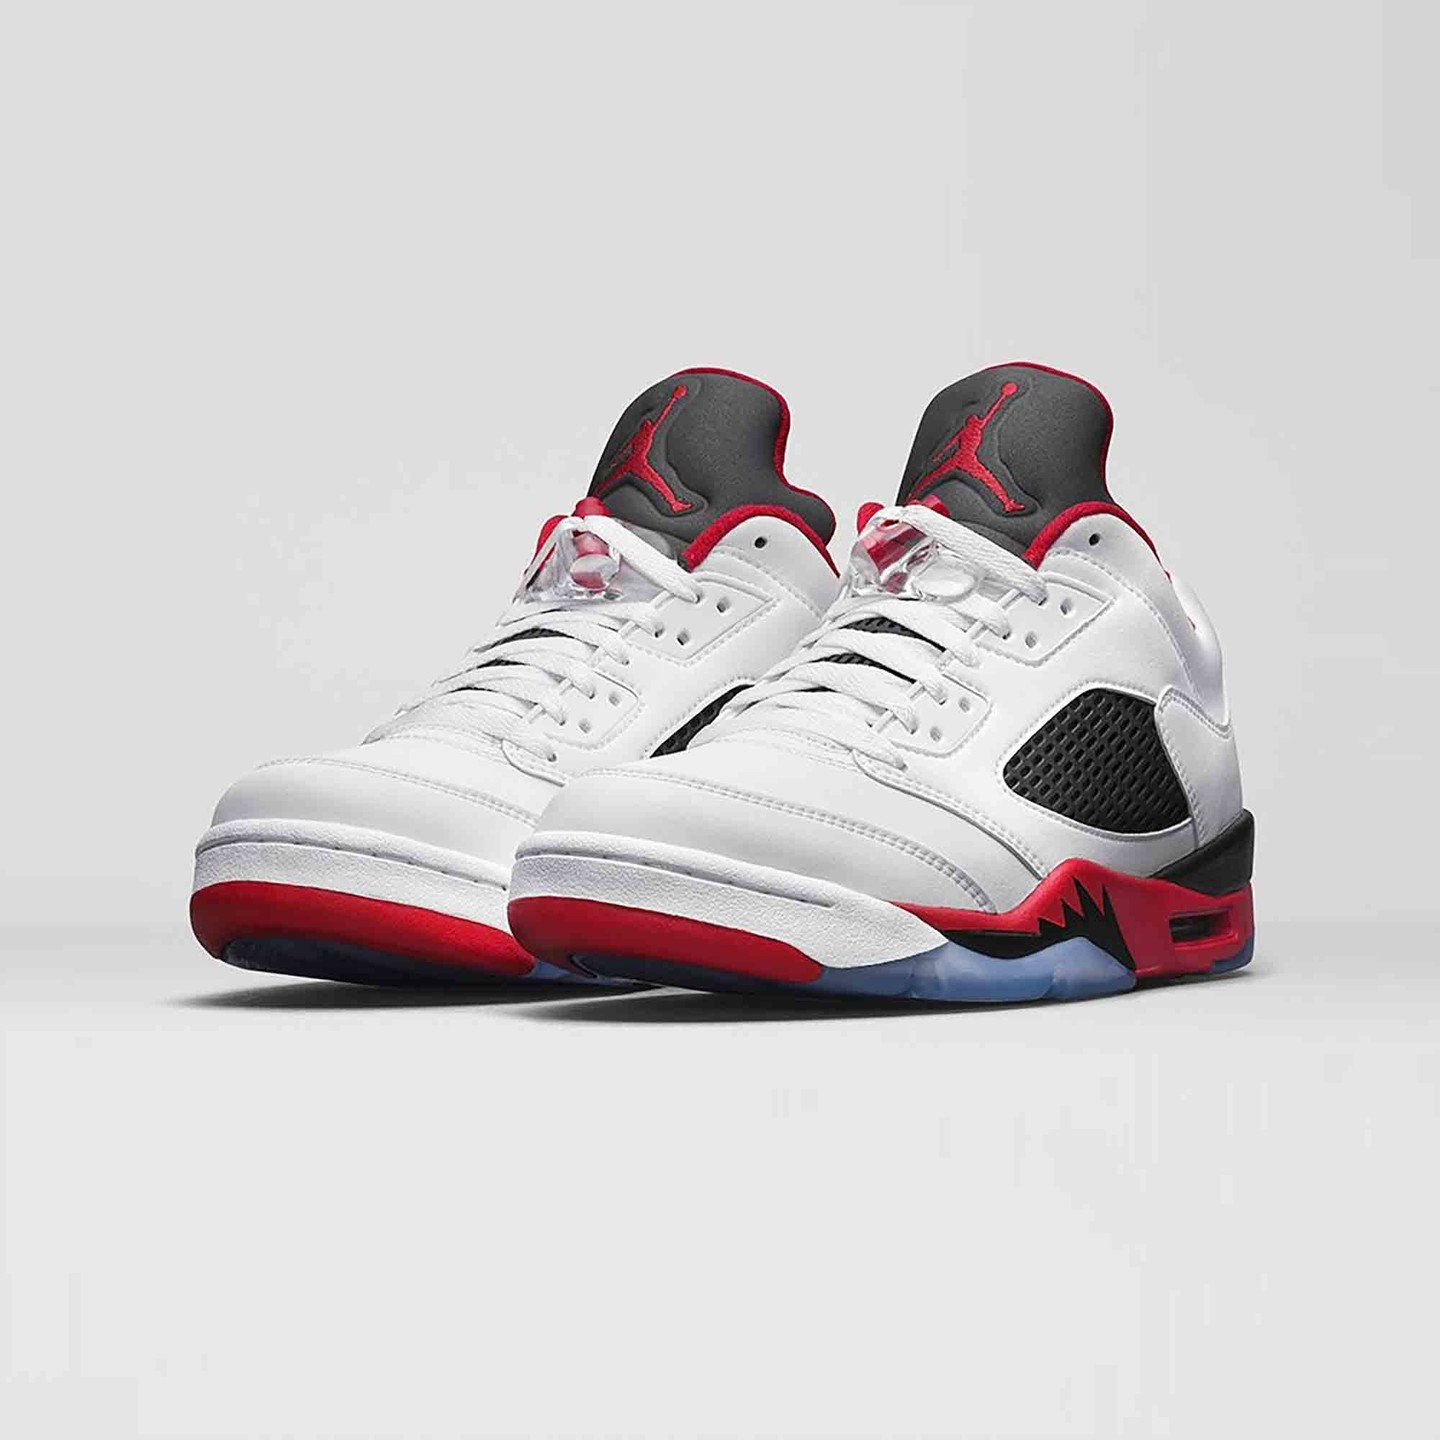 Jordan Air Jordan 5 Low Retro 'Fire Red' White / Fire Red / Black 819171-101-45